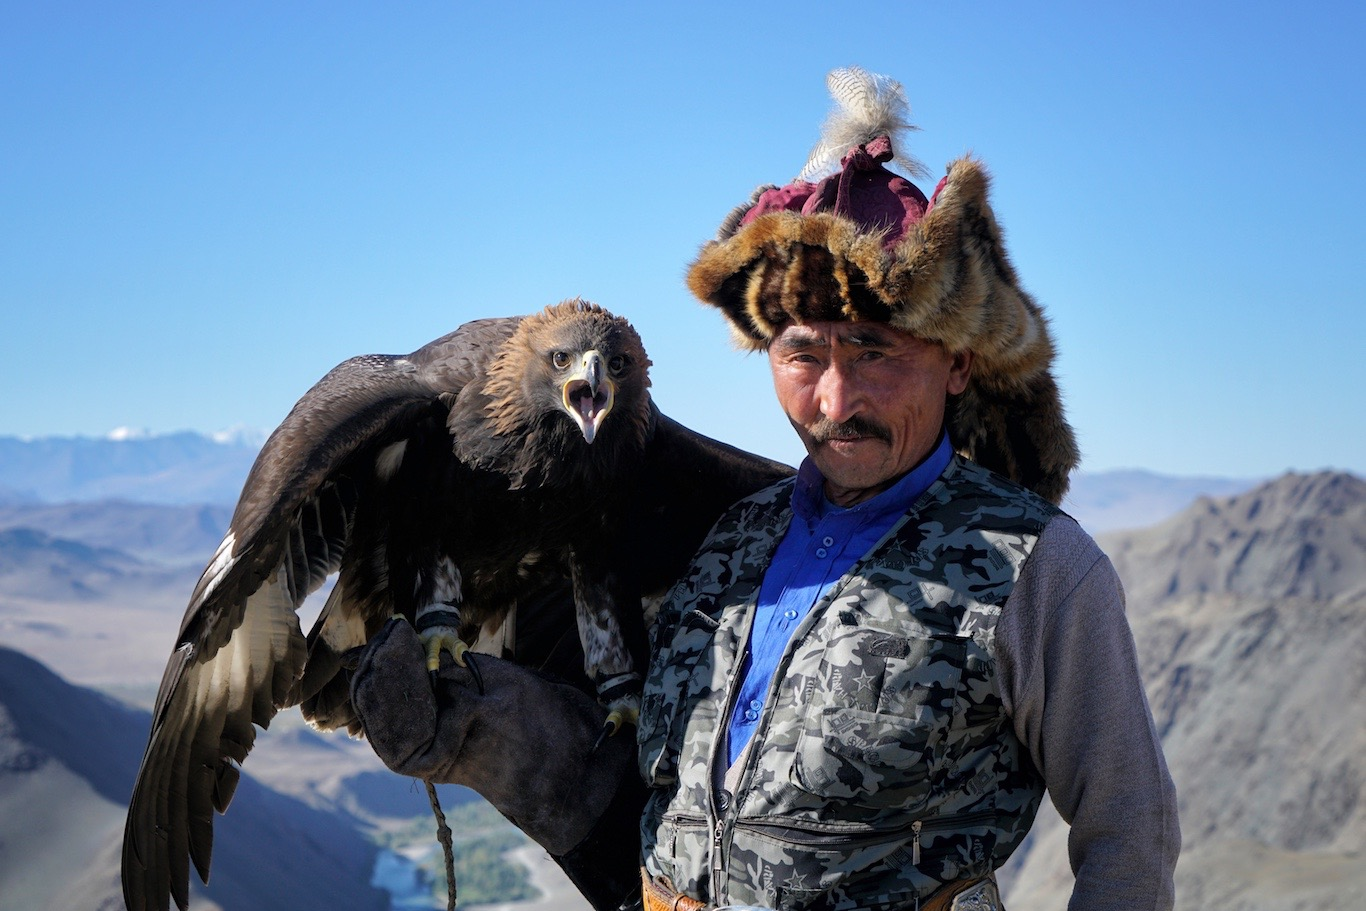 Kazakh Eagle Hunter-Haizem with is Golden Eagle, champion of 2012